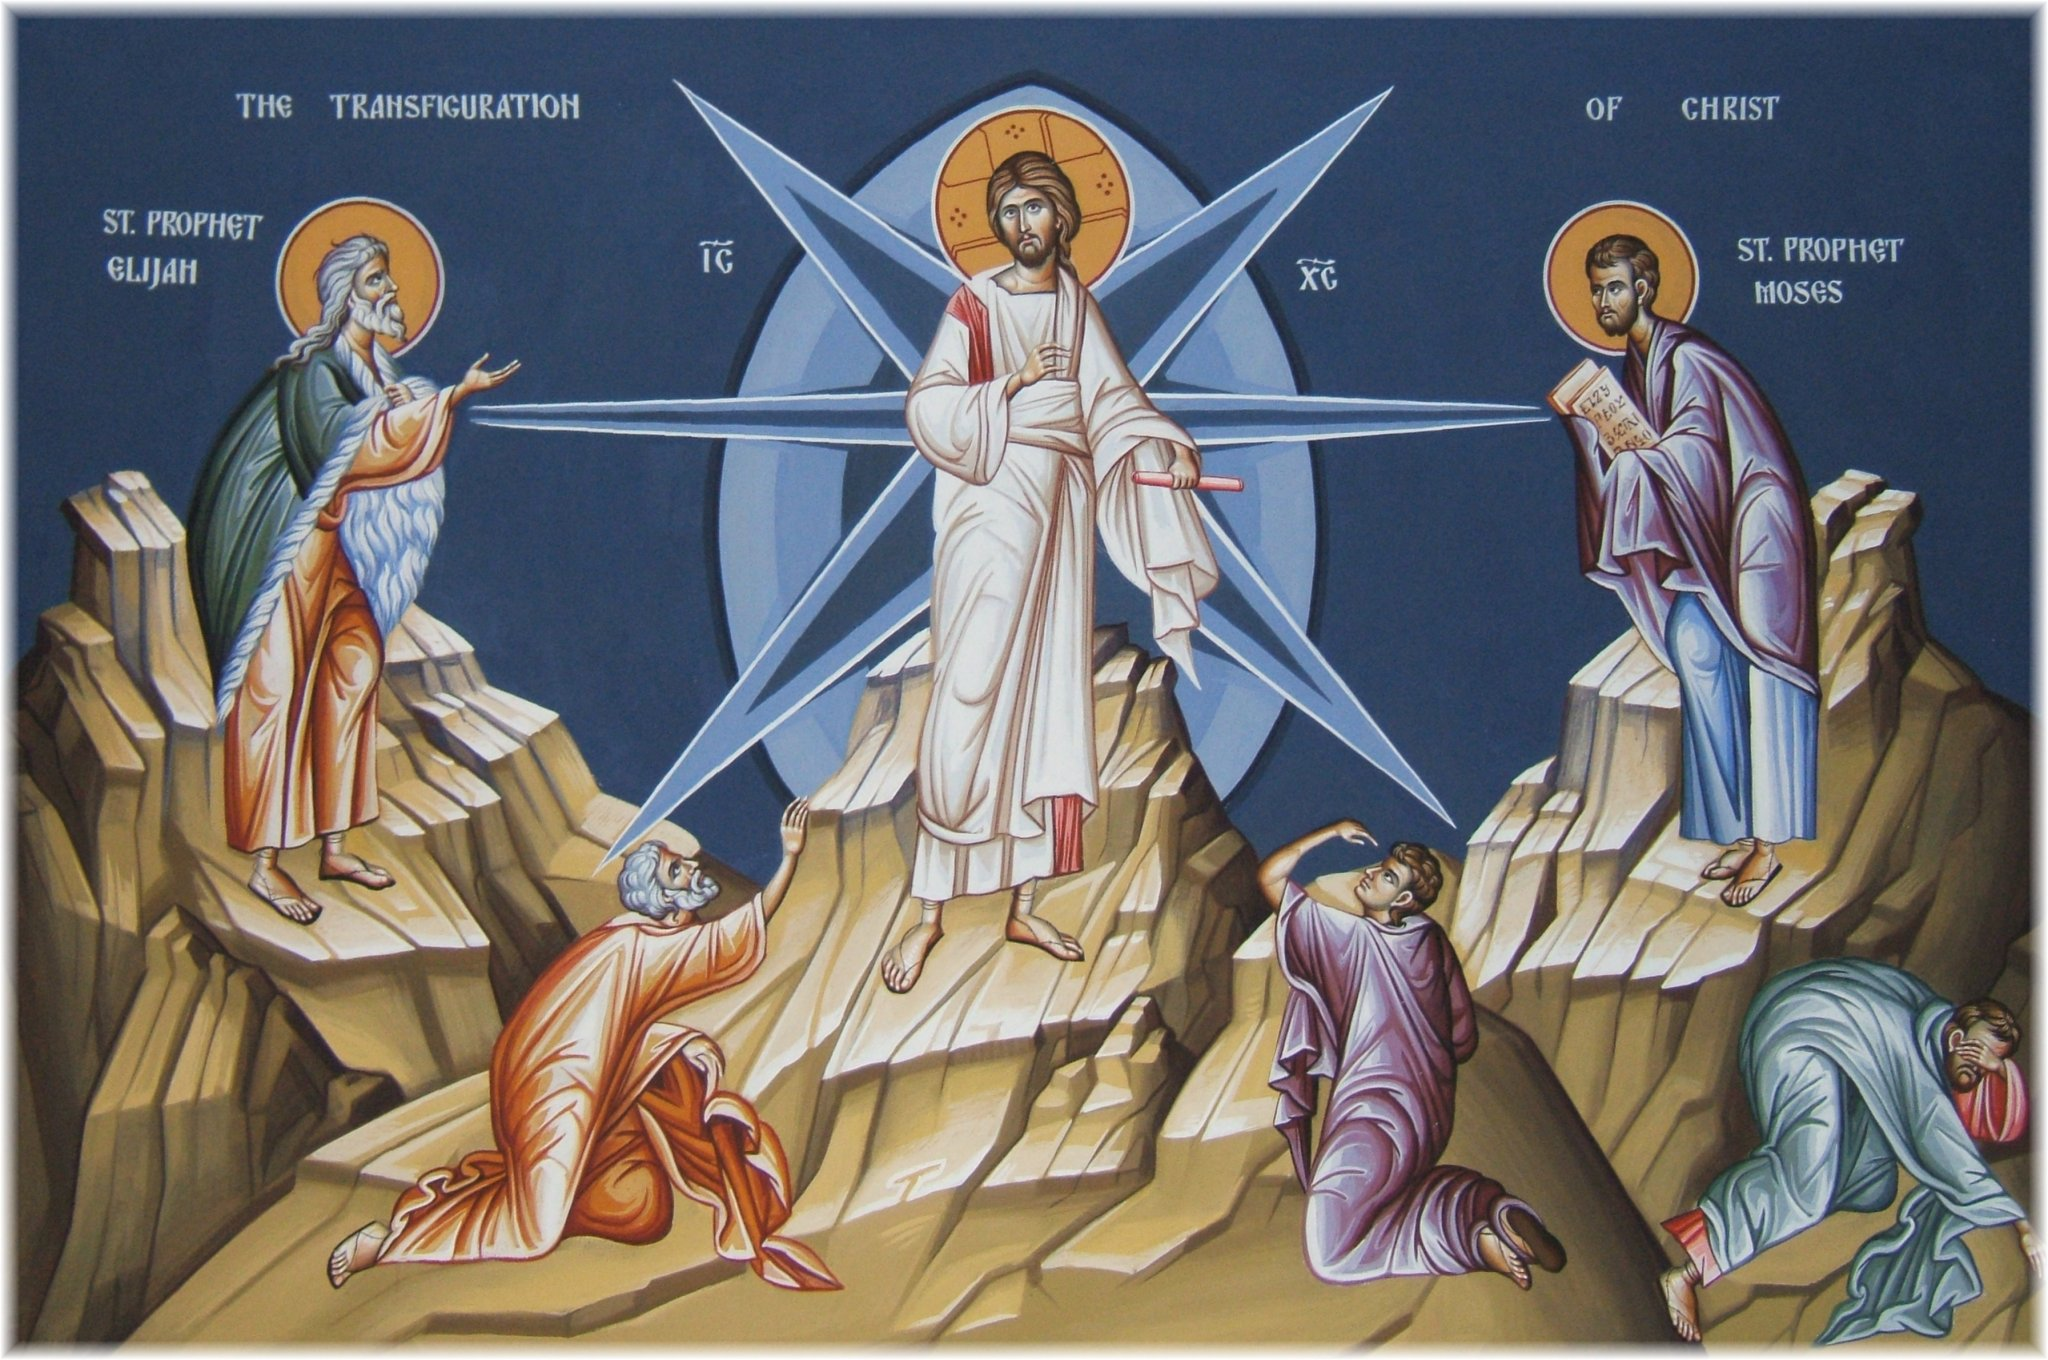 The Transfiguration - March 2